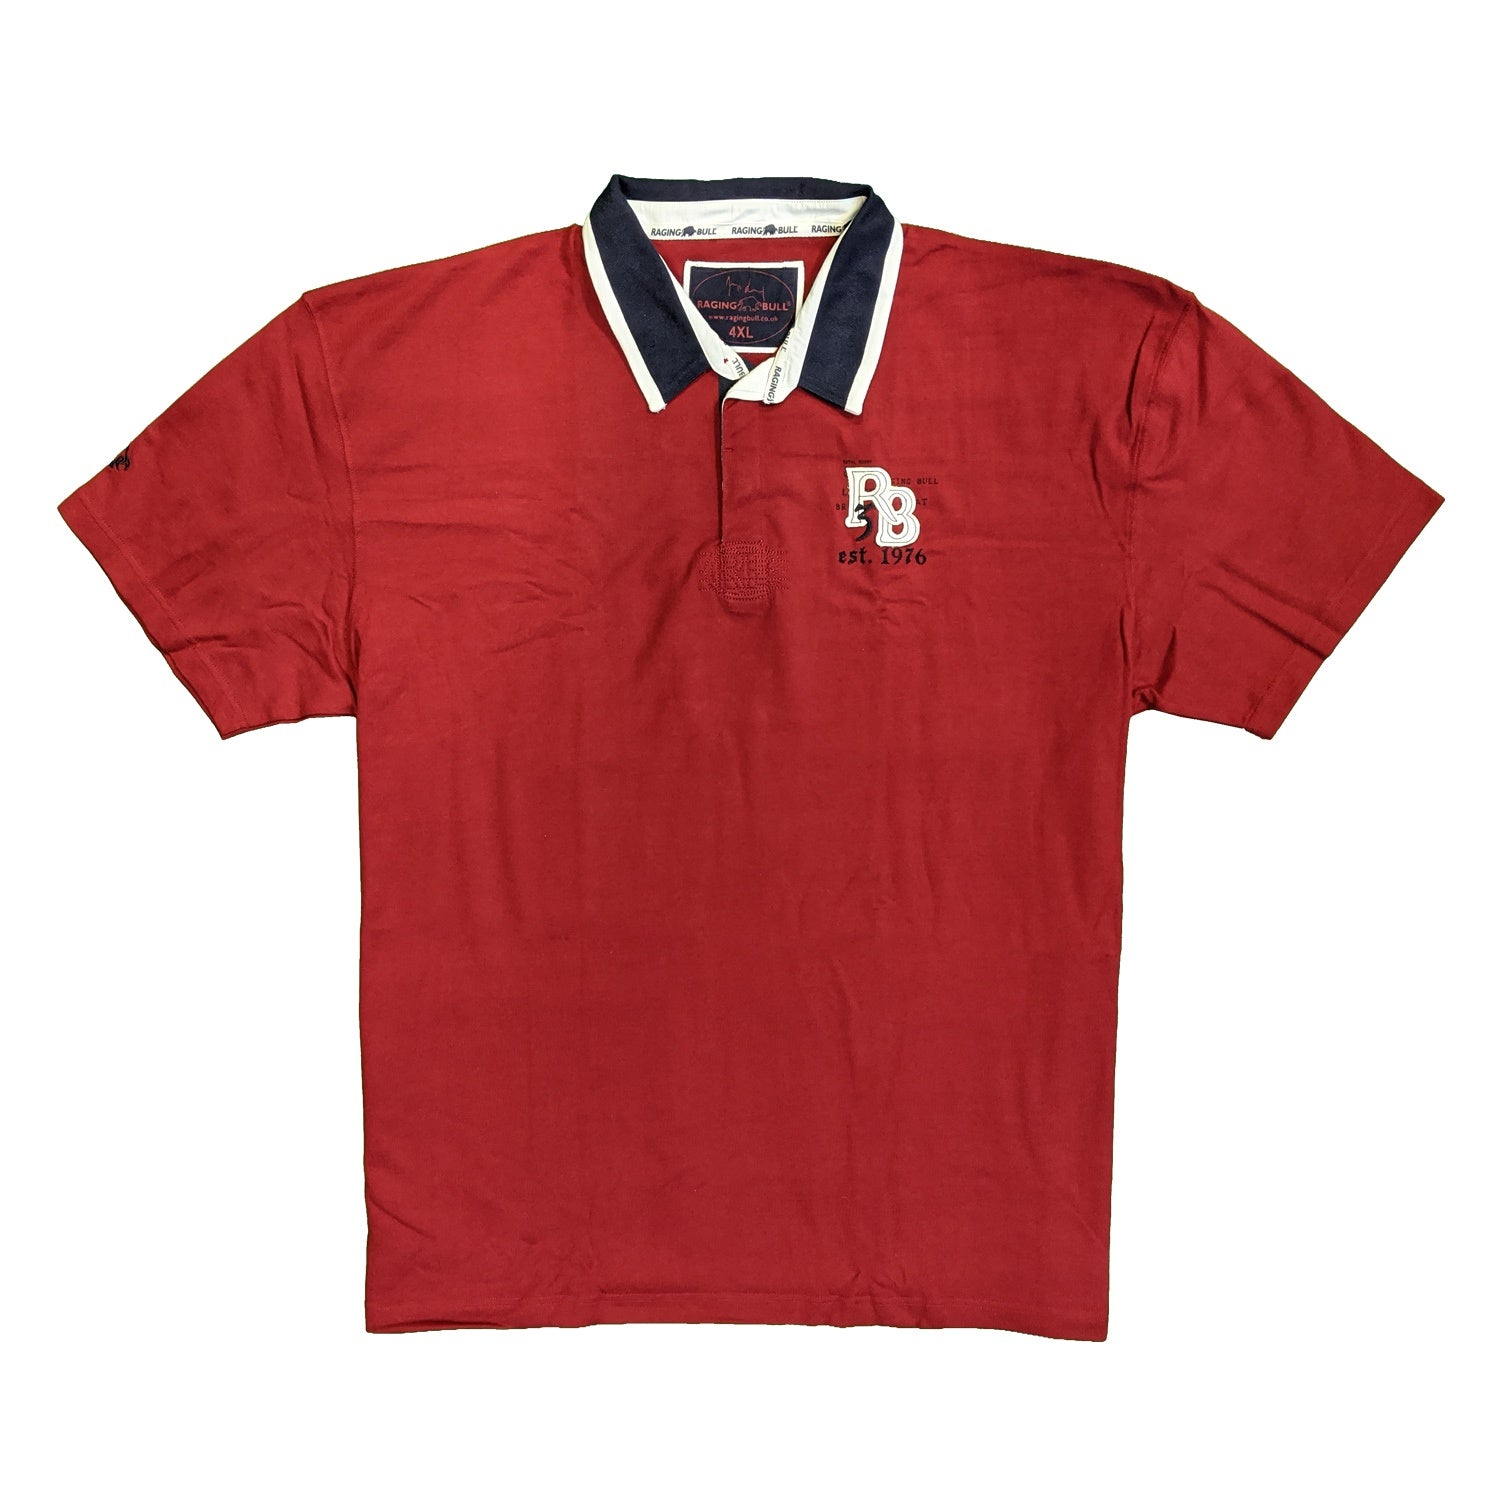 Raging Bull Rugby Polo - SS1332 - Wine 1